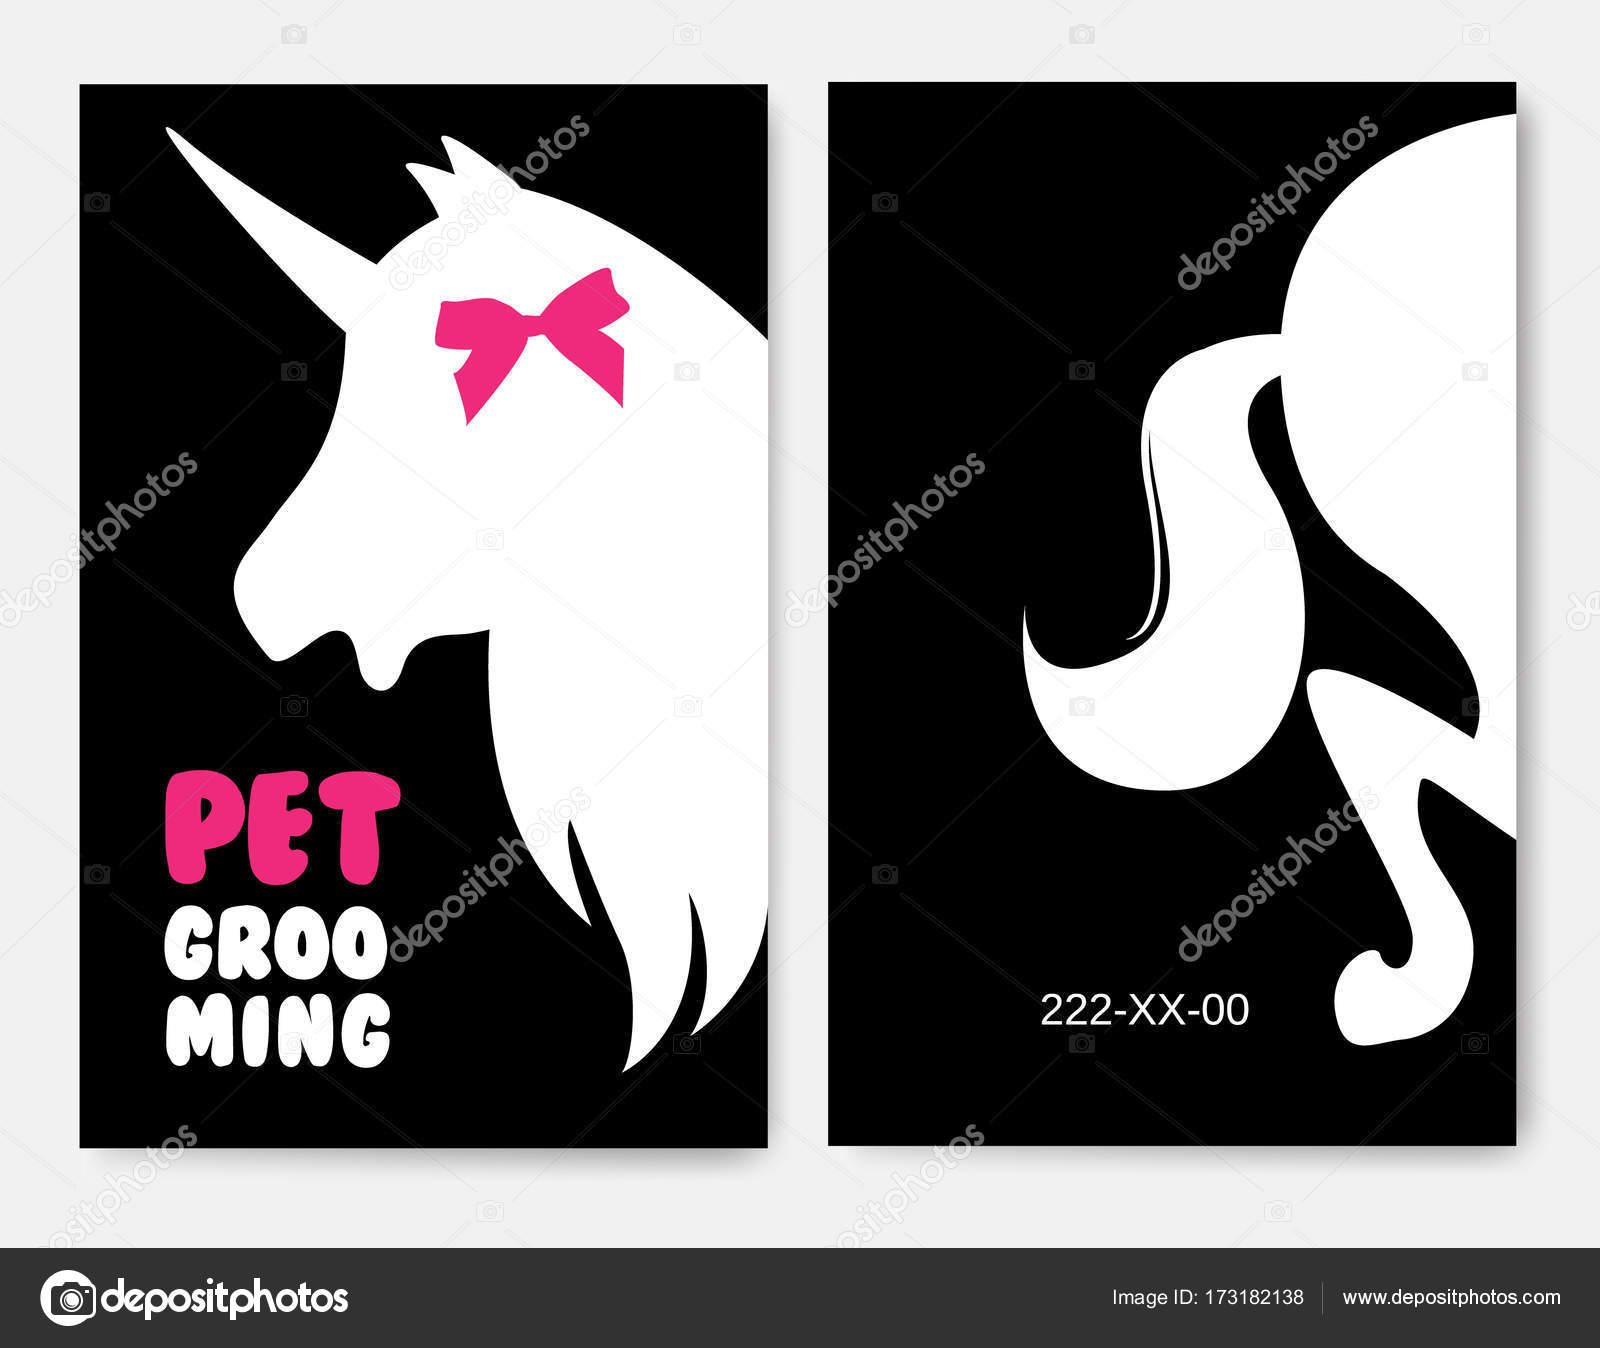 Business cards templates of grooming service pet with unicorns ...